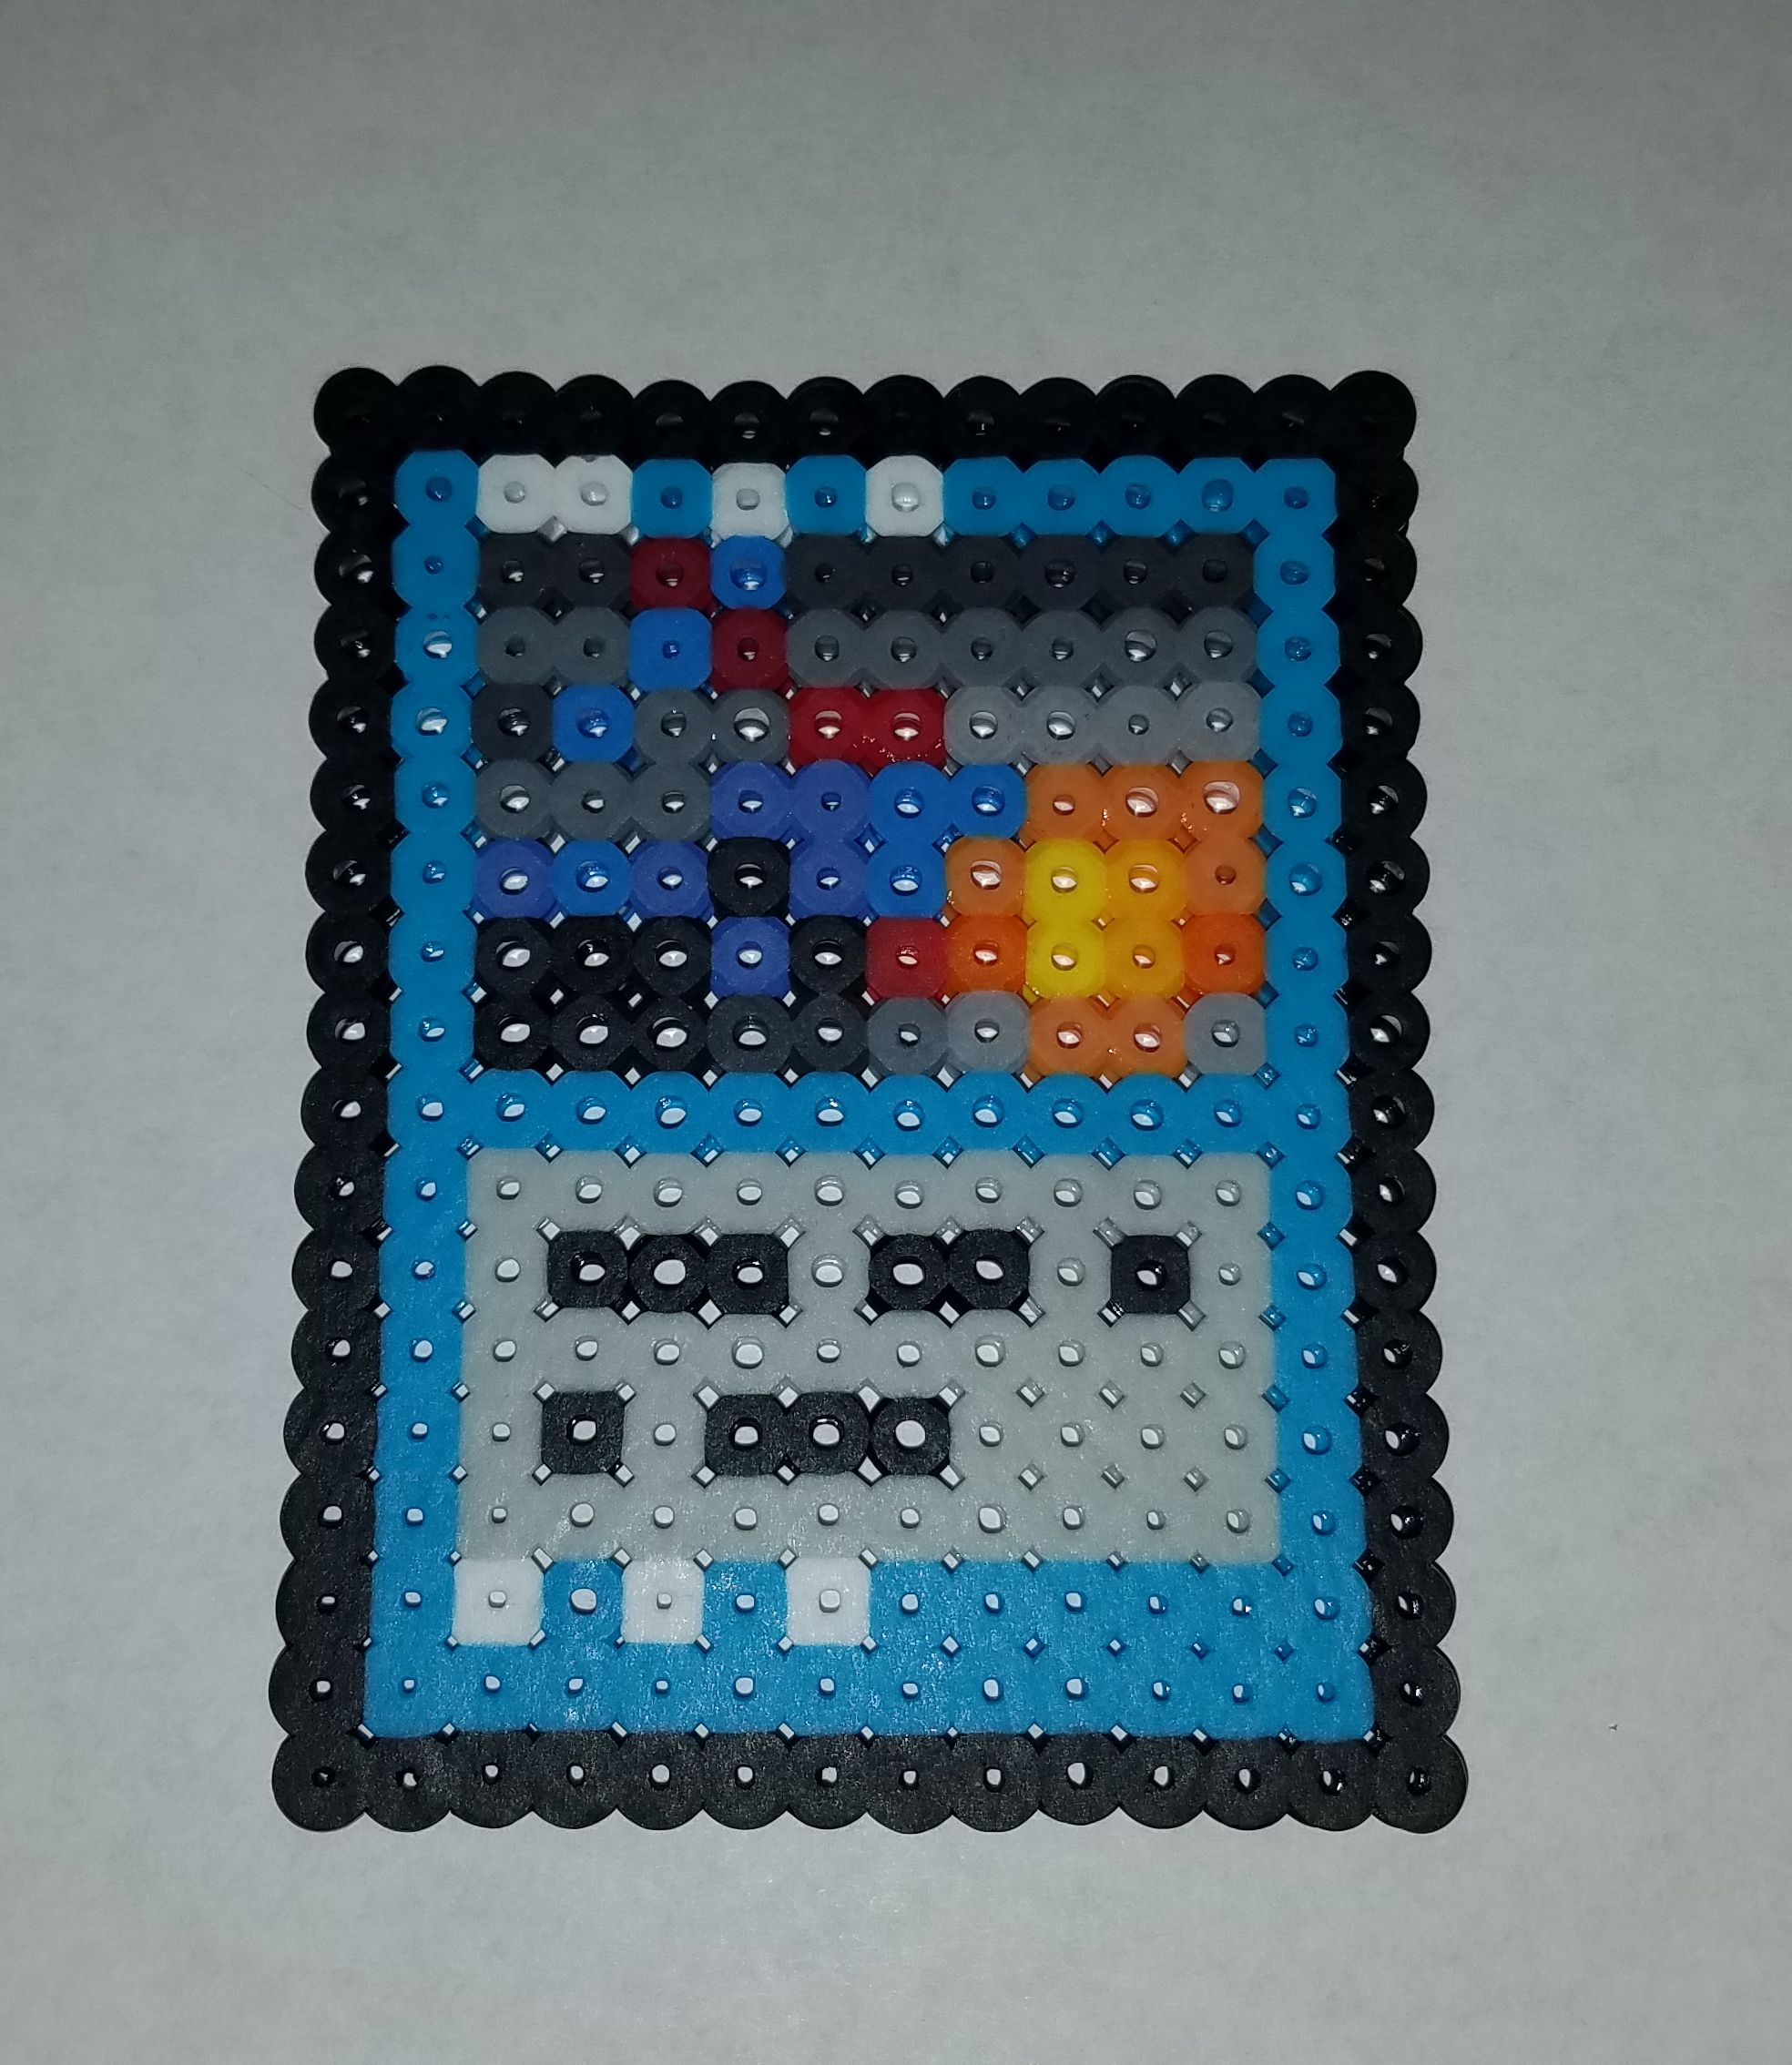 Item From The Binding Of Isaac (Booster Pack 01